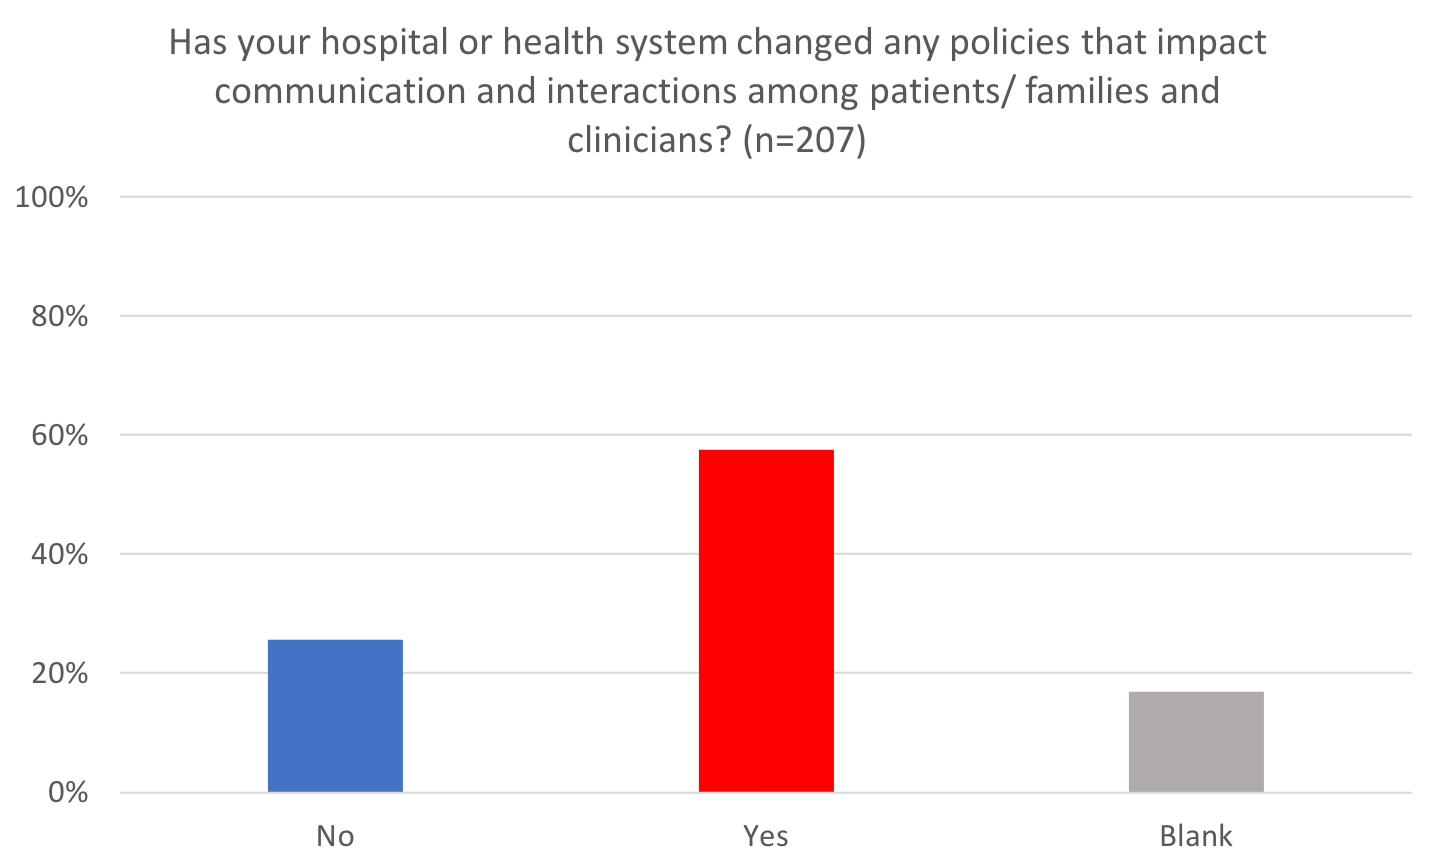 Has your hospital or health system changed any policies that impact communication and interactions among patients/ families and clinicians? (n=169)